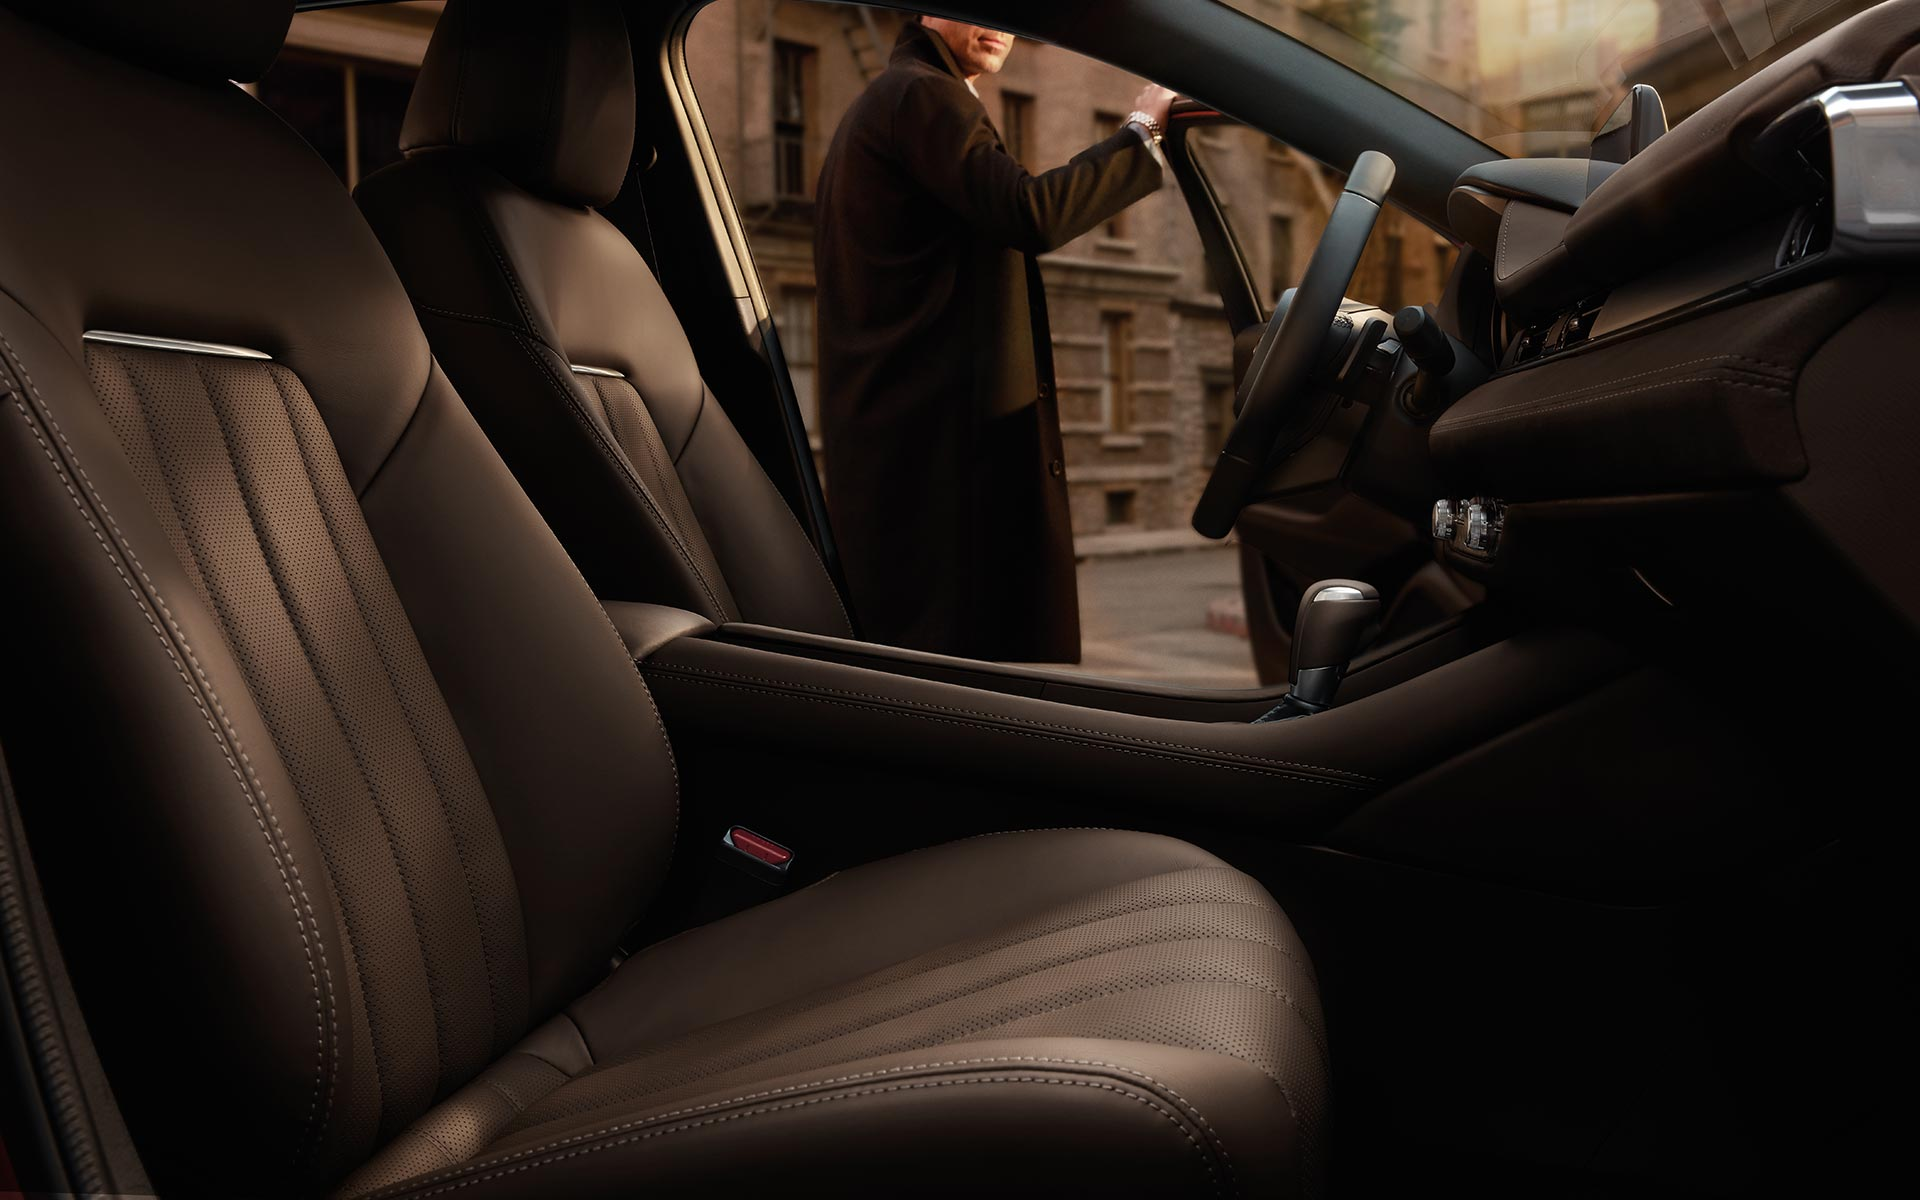 https://www.mazdausa.com/siteassets/vehicles/2018/mz6/features-page/tout/2018-Mazda-6-cabin-interior.jpg